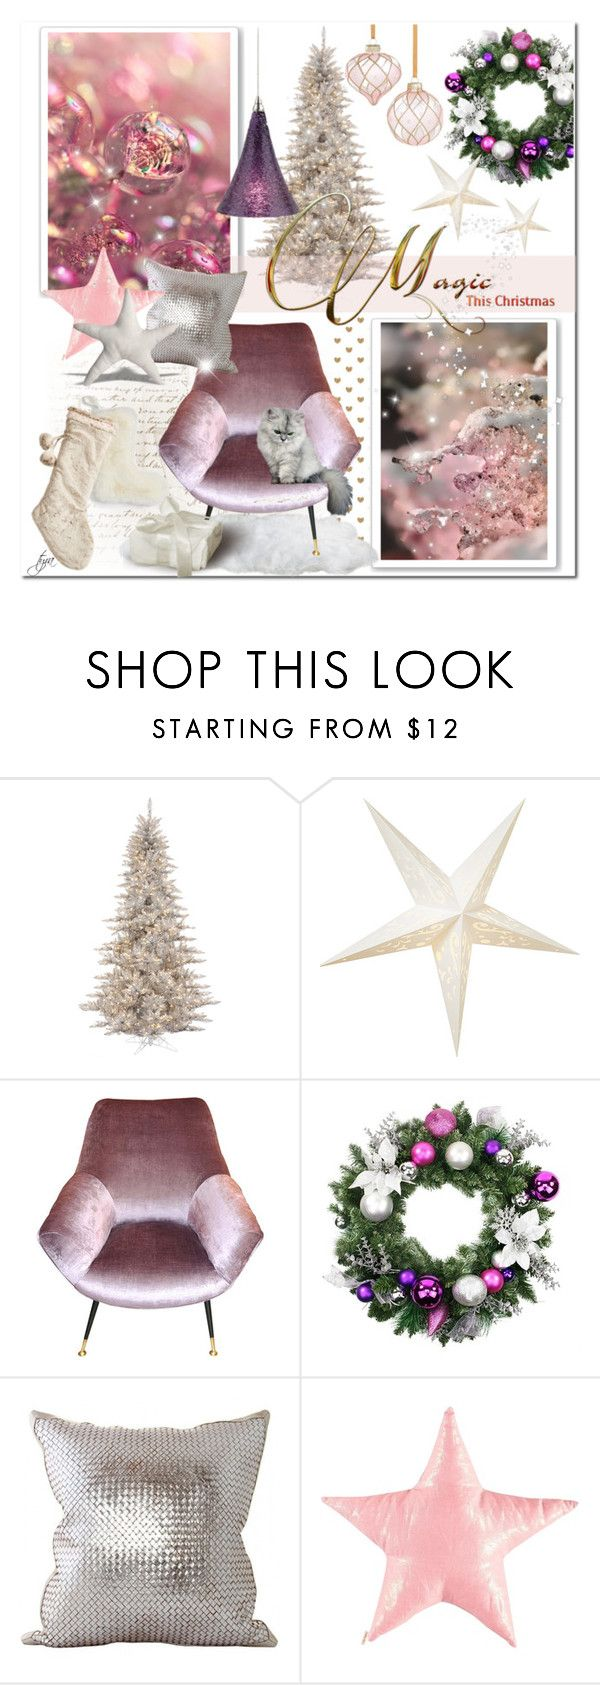 """Magic Of Christmas"" by oregonelegance ❤ liked on Polyvore featuring interior, interiors, interior design, home, home decor, interior decorating, Betsey Johnson, Cultural Intrigue, Lance Wovens and Tech Lighting"